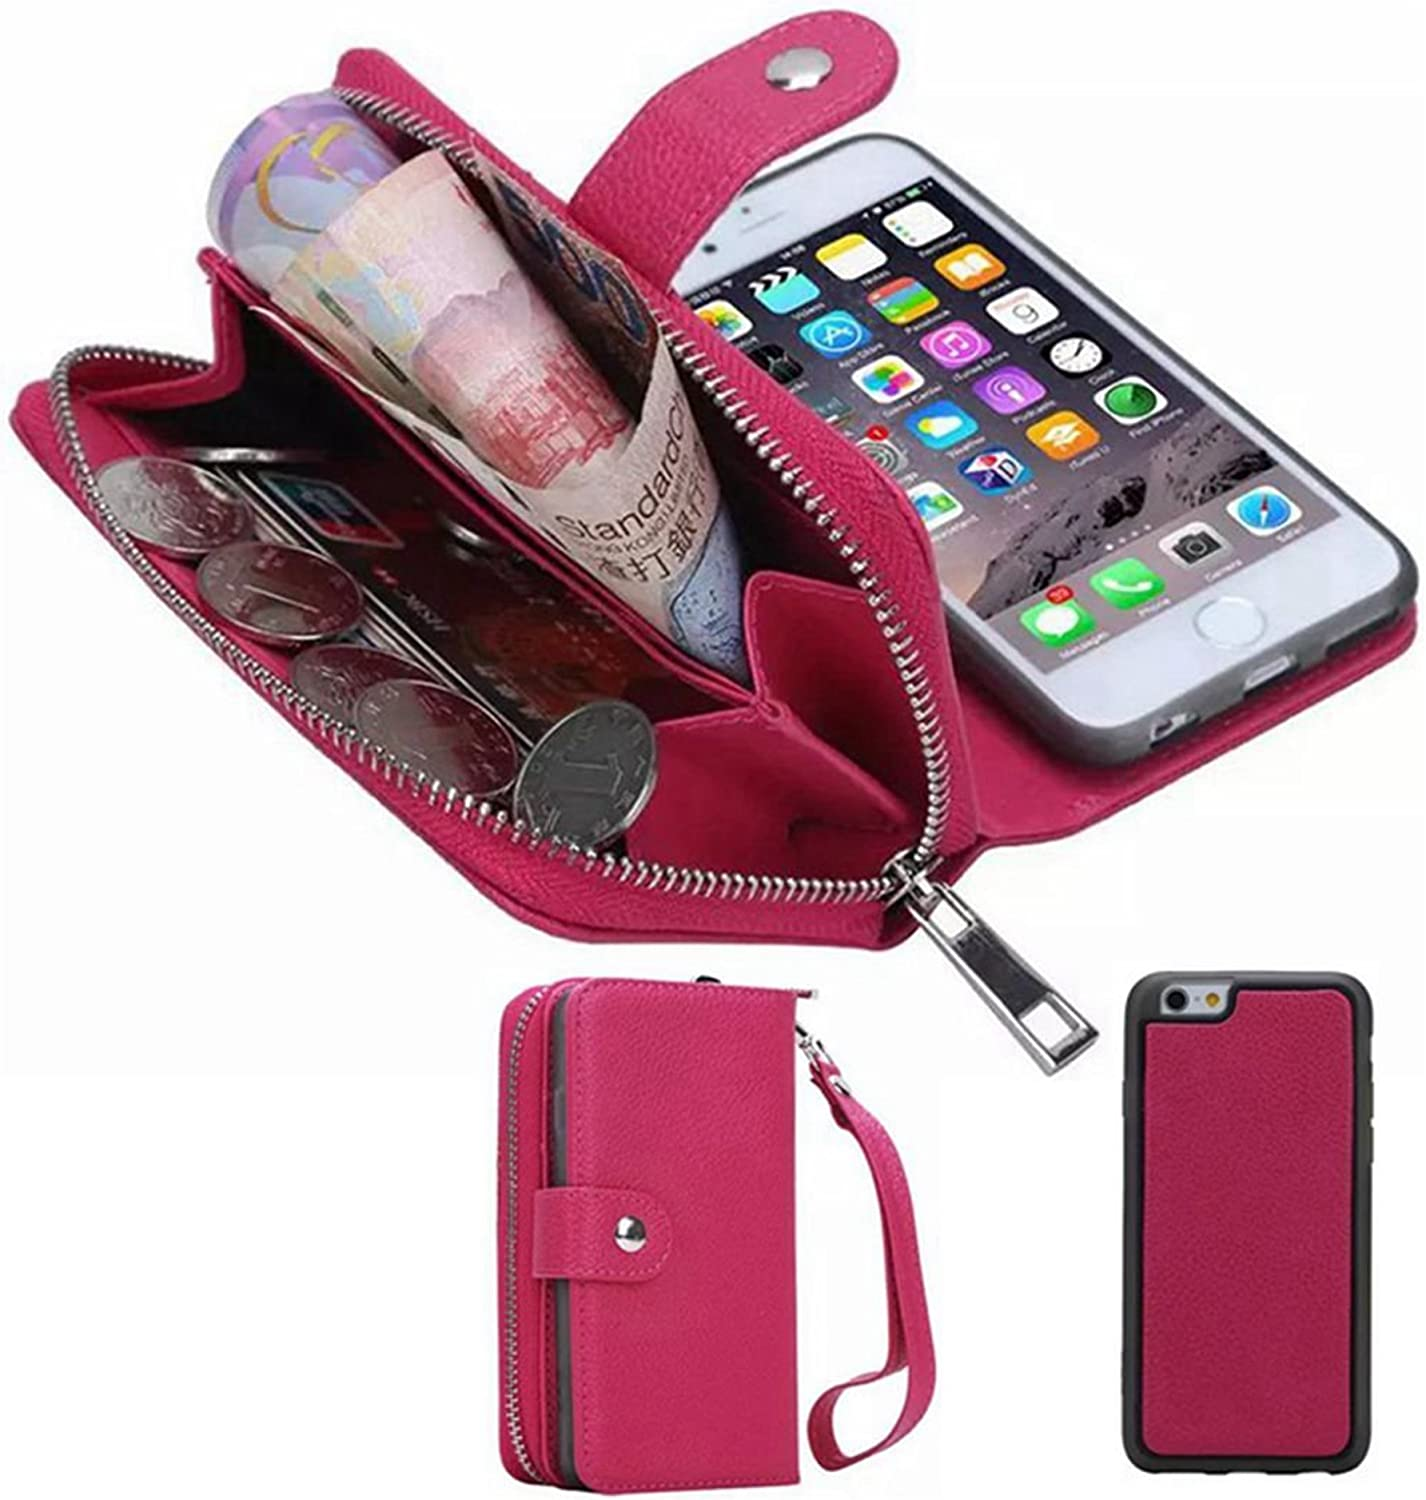 """HYSJY iPhone 6/6SWallet Case, Girls Women Magnets Detachable Zipper Wallet Case iPhone 6/6S Cover PU Leather Folio Flip Holster Carrying Case Card Holder for iPhone 6 /6S 4.7"""" (Rose)"""